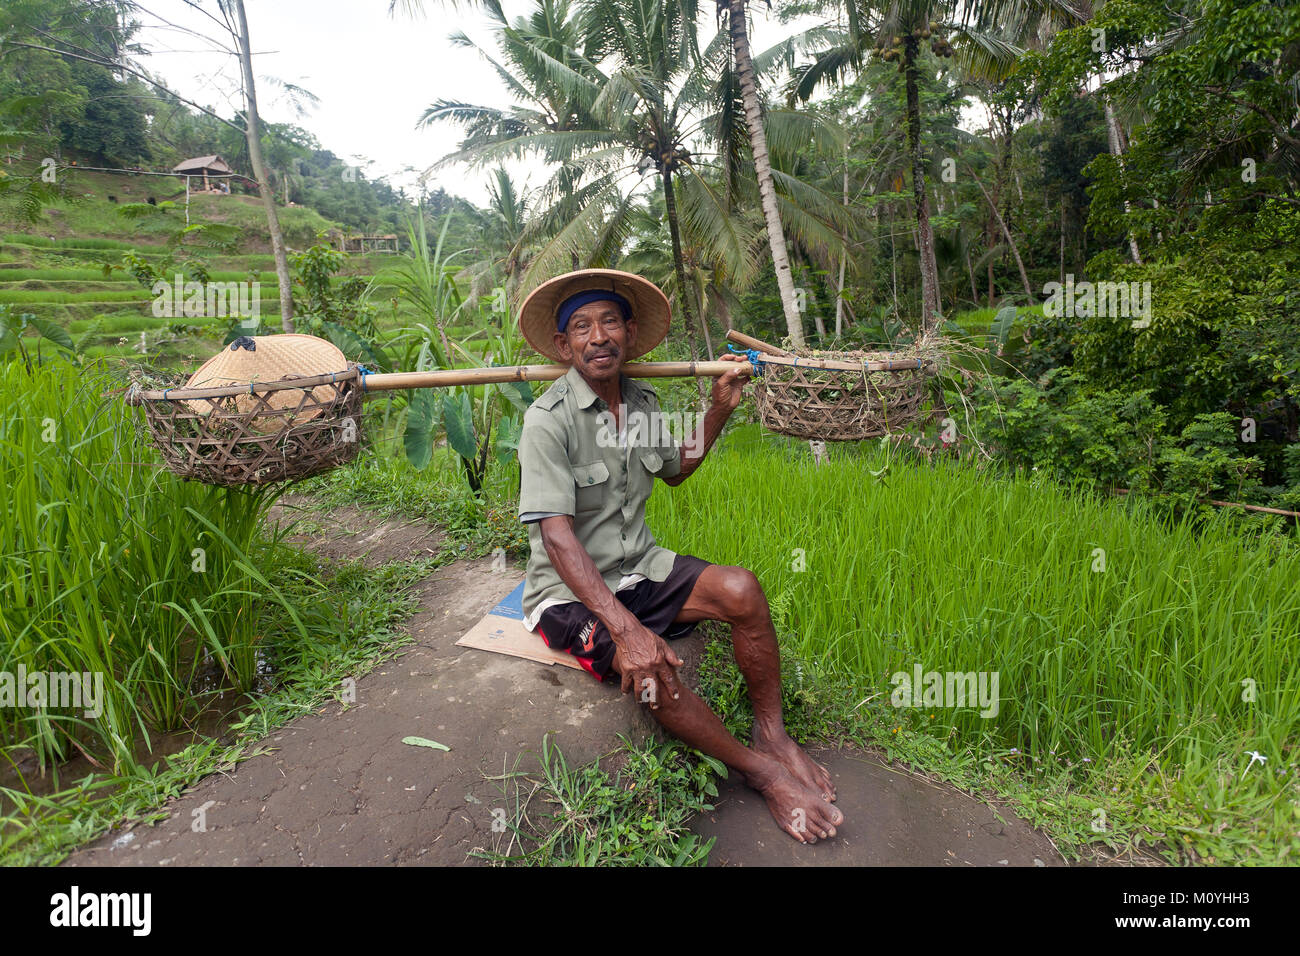 Rice grower at the rice terraces of Tegalalang,Ubud,Bali,Indonesia - Stock Image